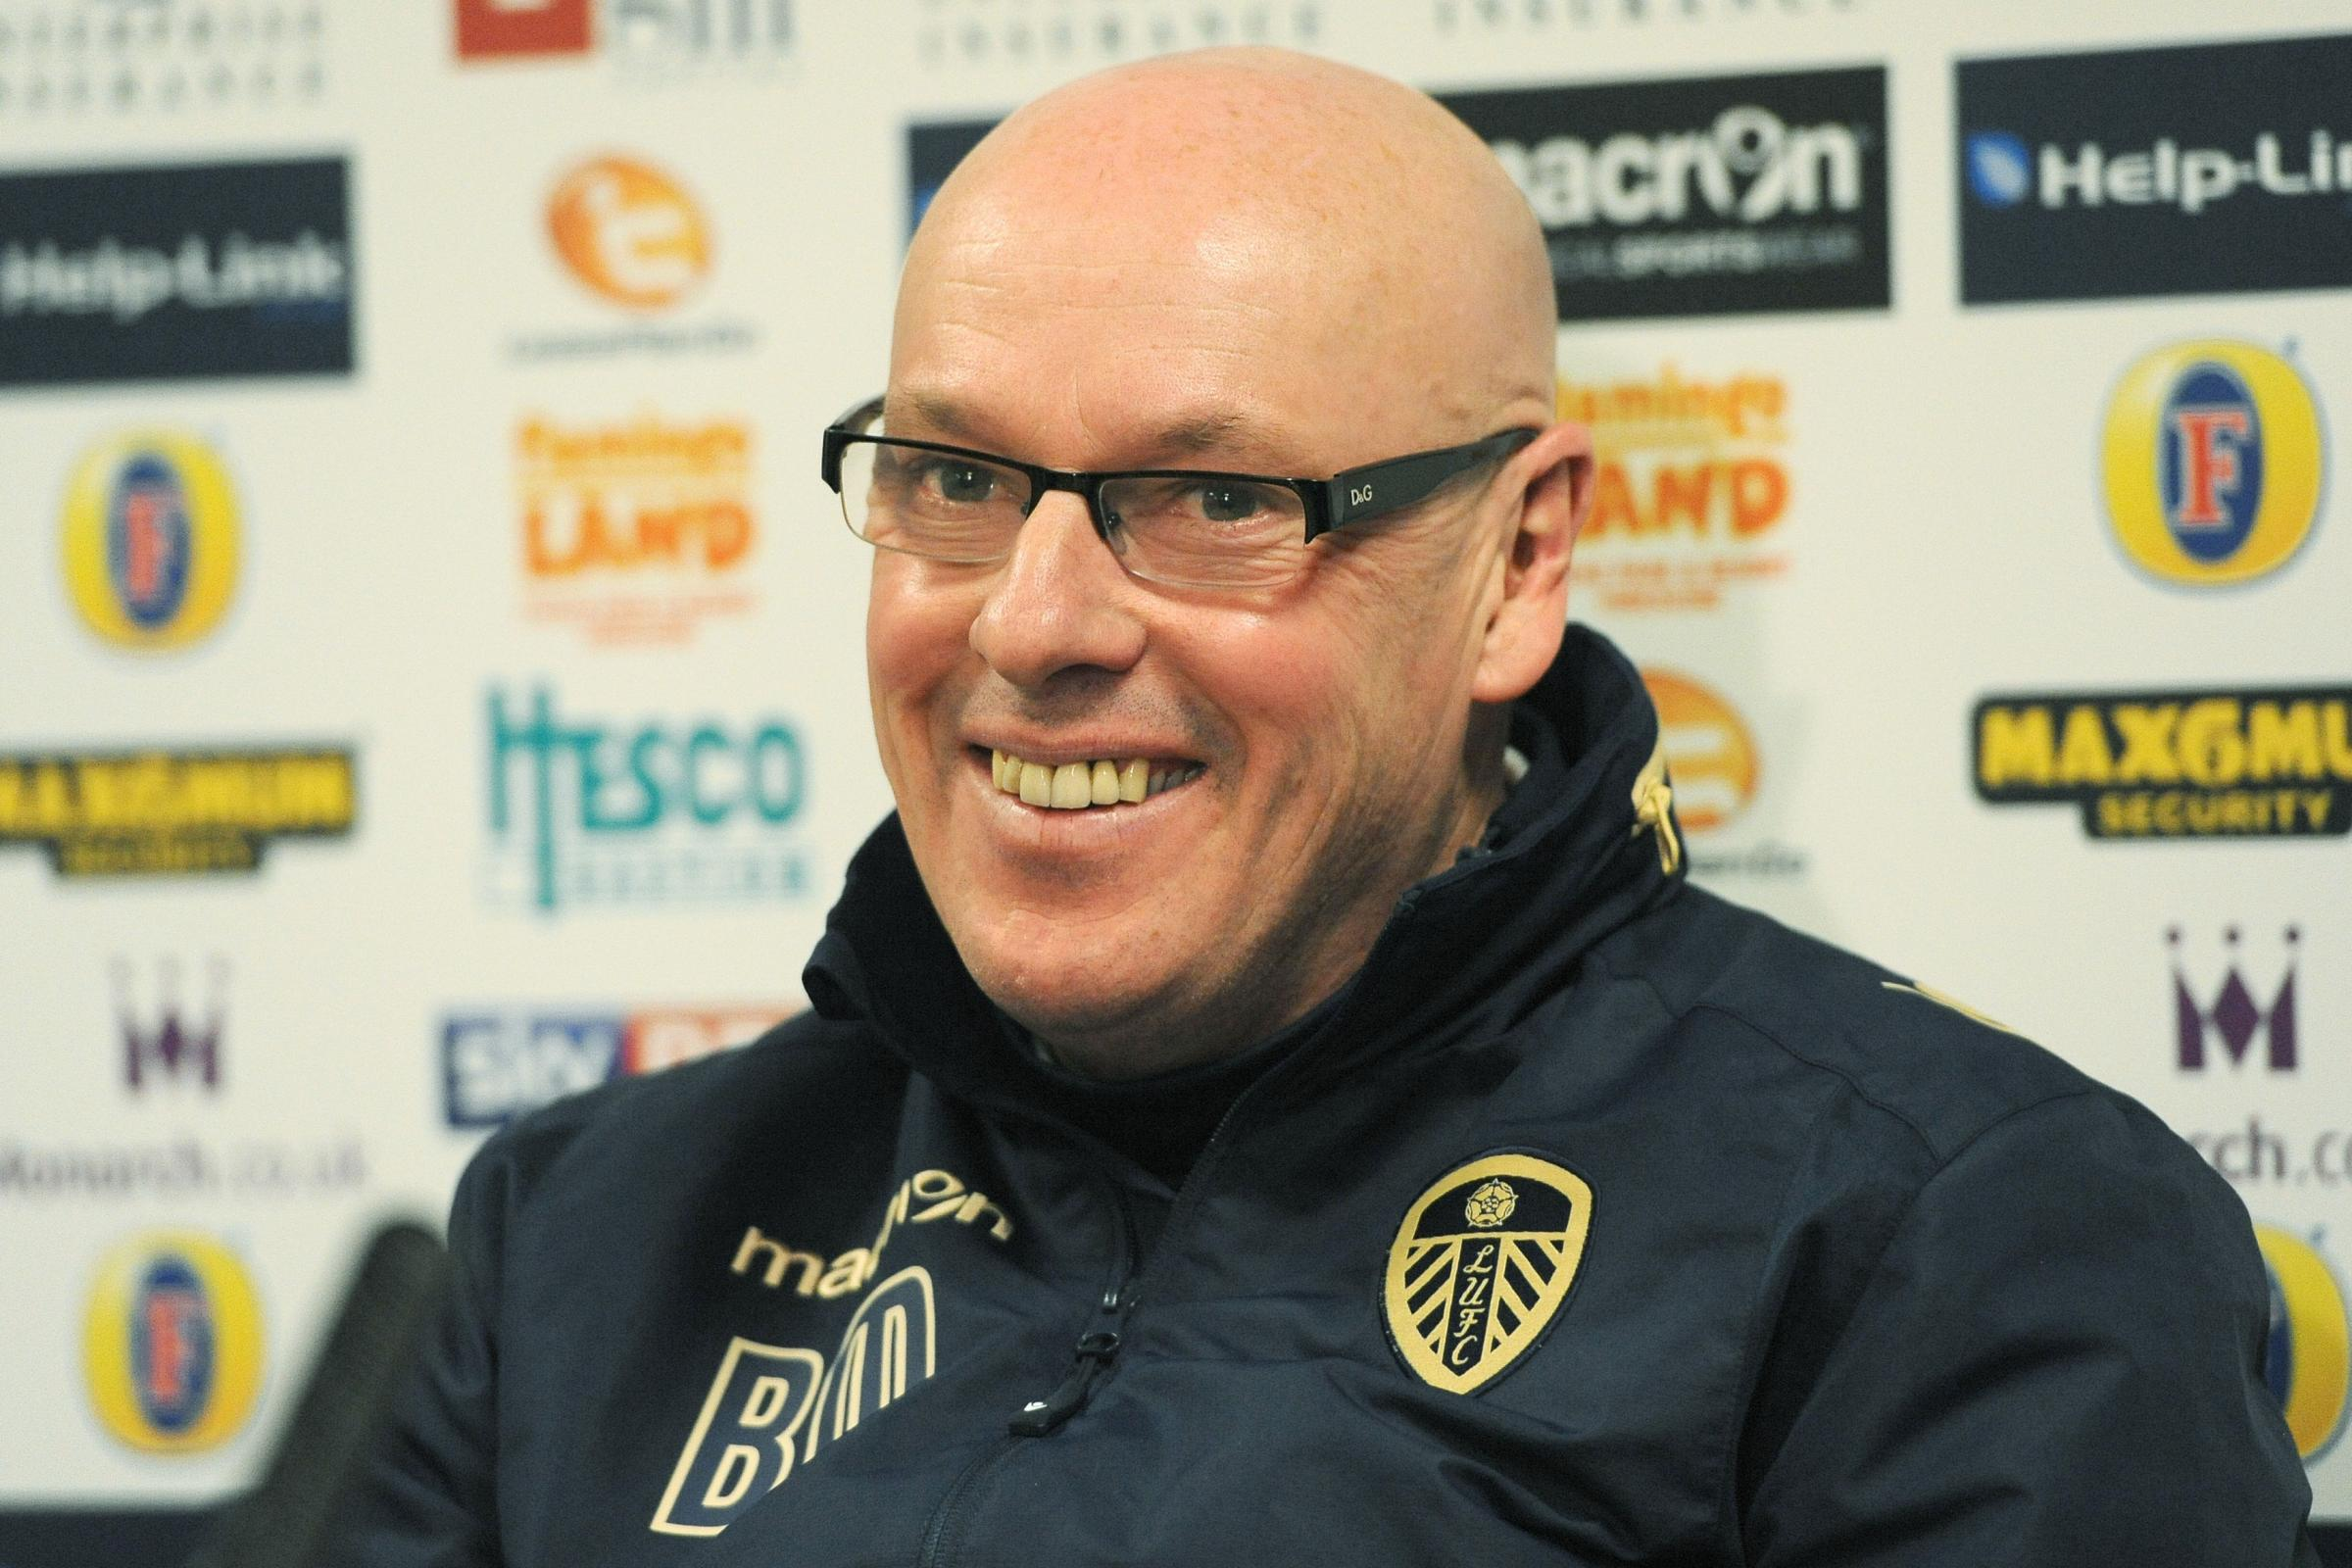 Brian McDermott remains manager of Leeds United for the time being